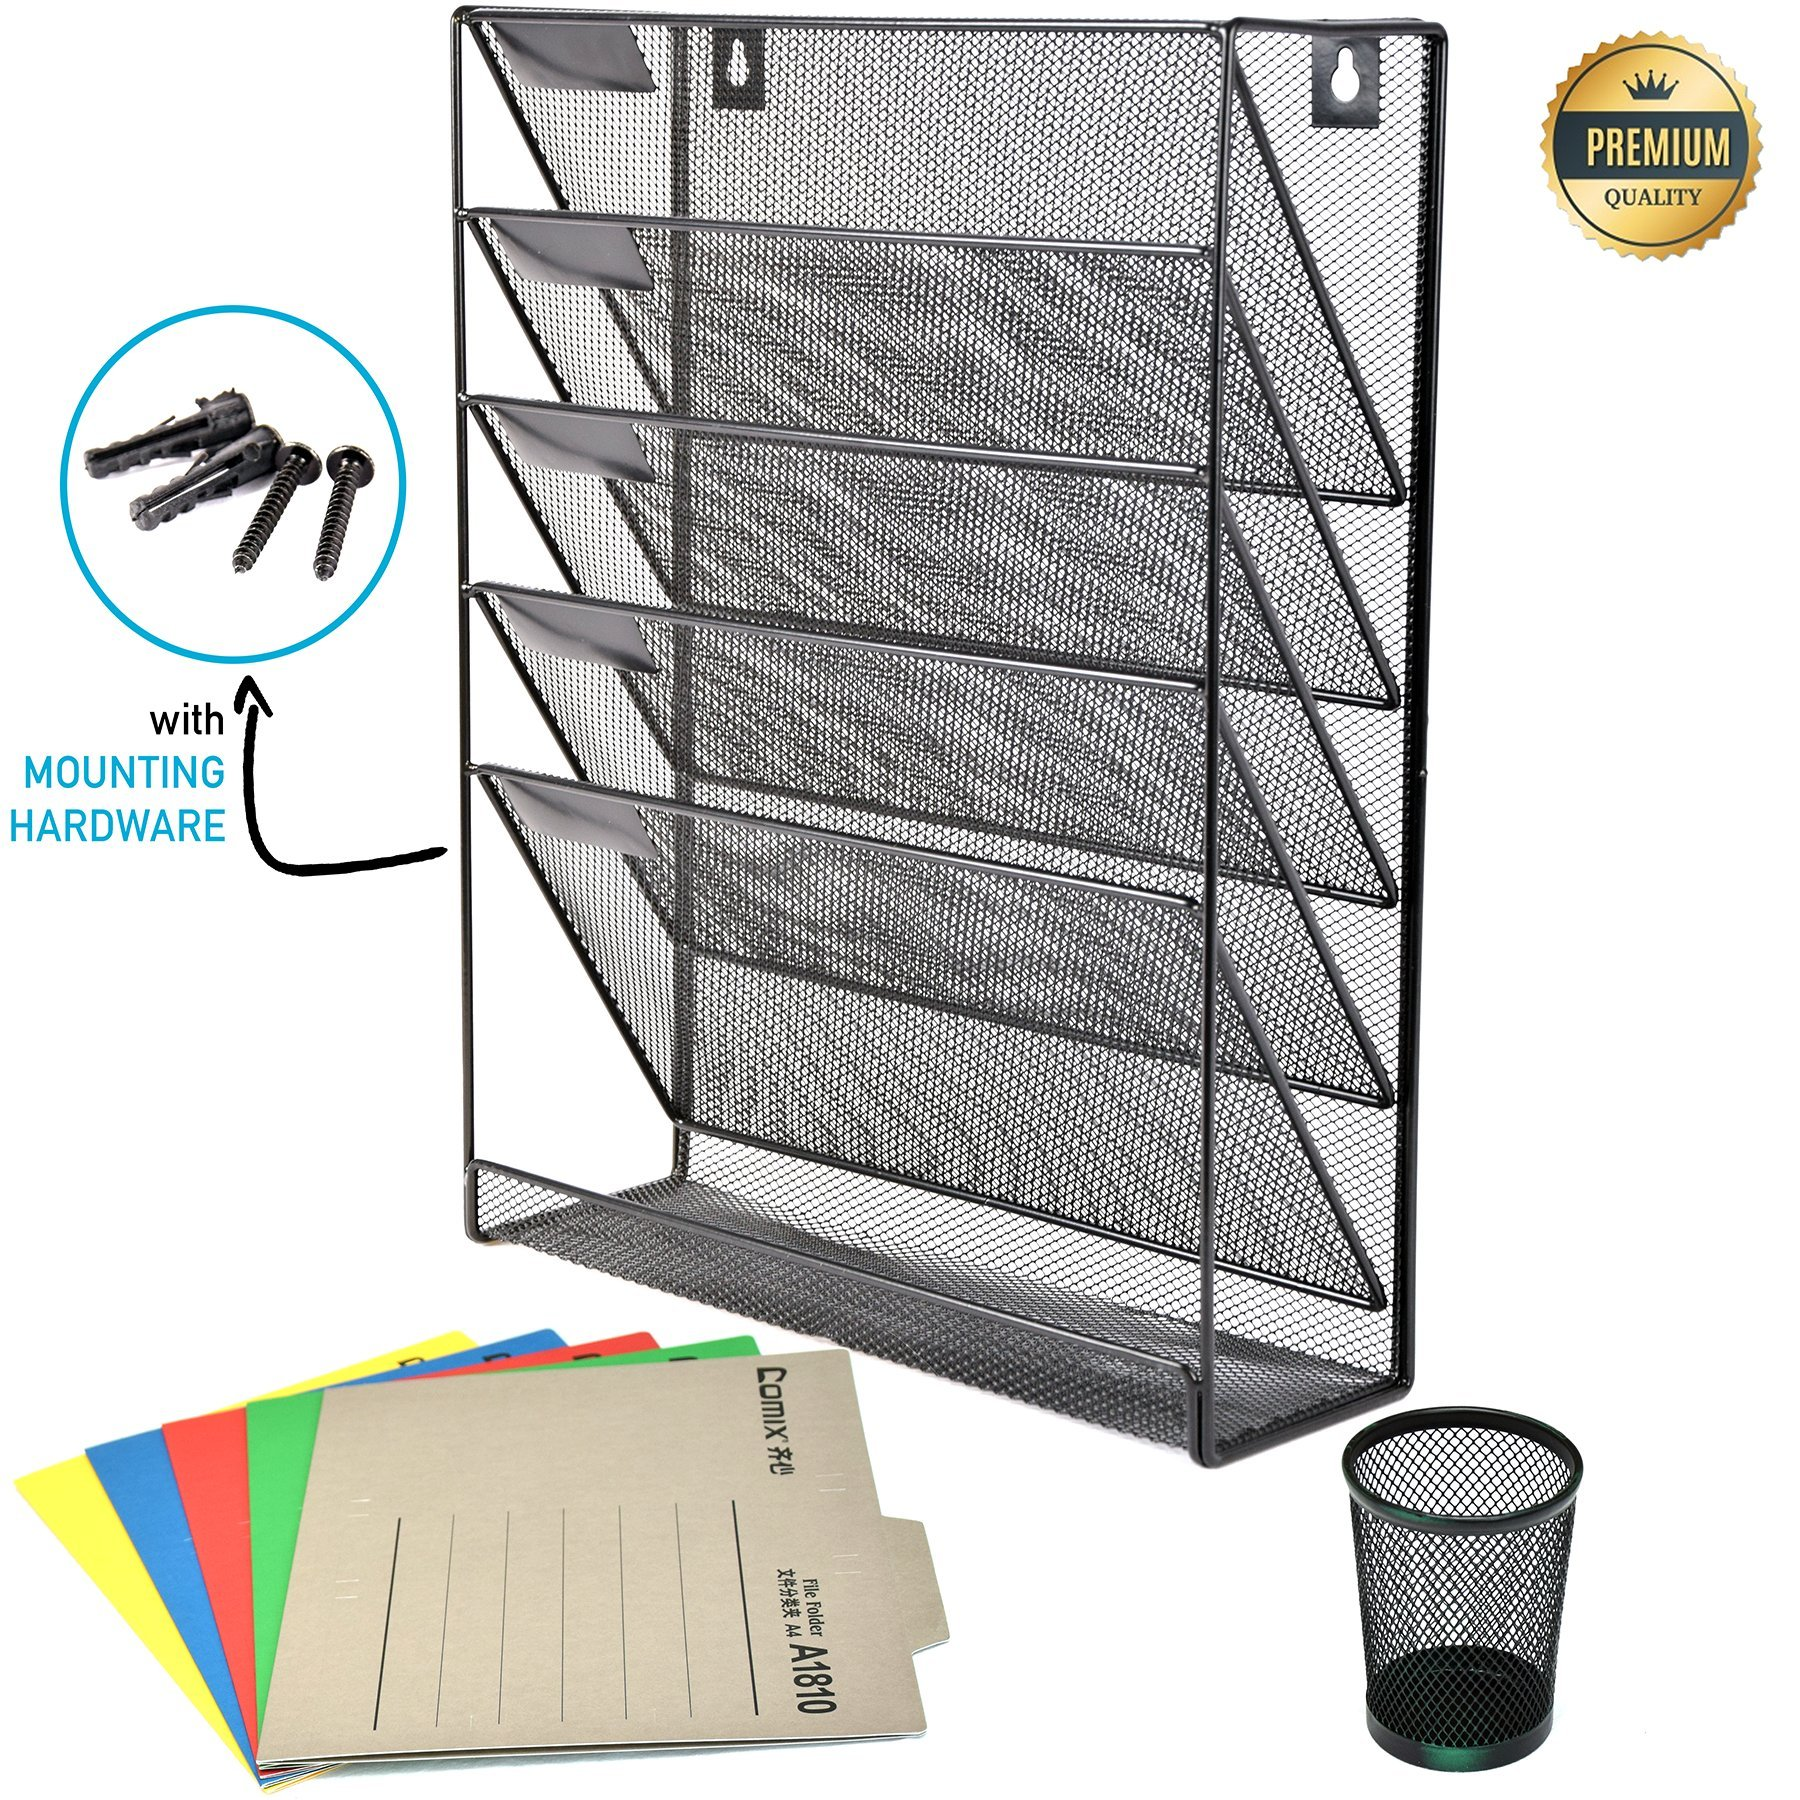 Mesh Wall File Holder Organizer – 5 Tier Hanging Wall Mounted Rack – for Office/Home – Mail Organizer, Sorter Tray for Letters, Folders, Notebooks, Laptop, Binders. – With Plugs, Penholder & Folders